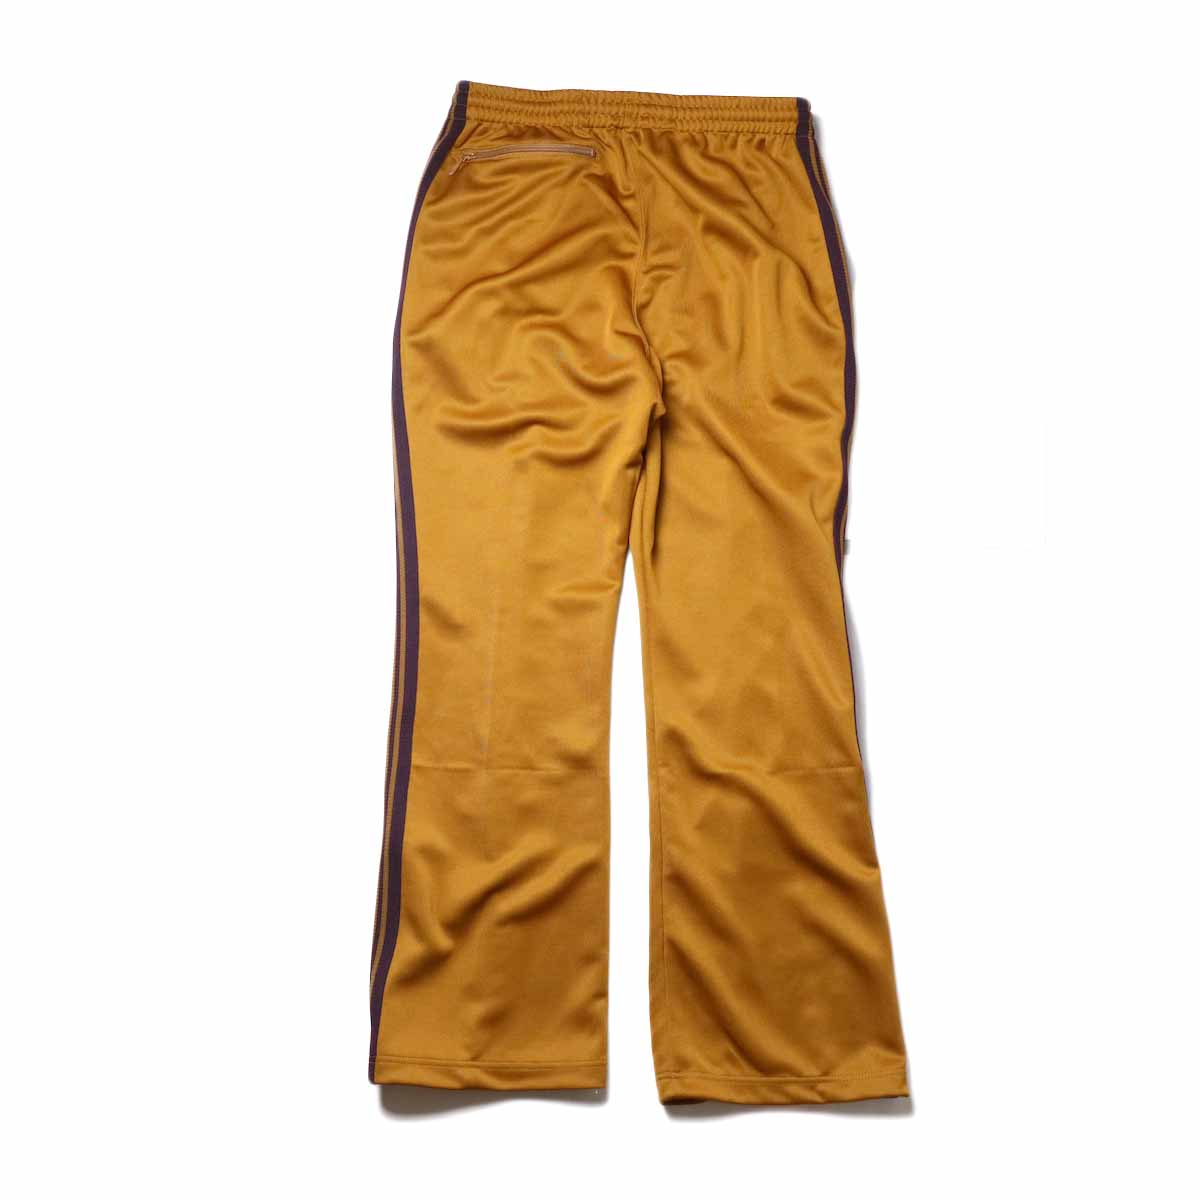 Needles / Boot-cut Track Pants -Poly Smooth (Mustard)背面